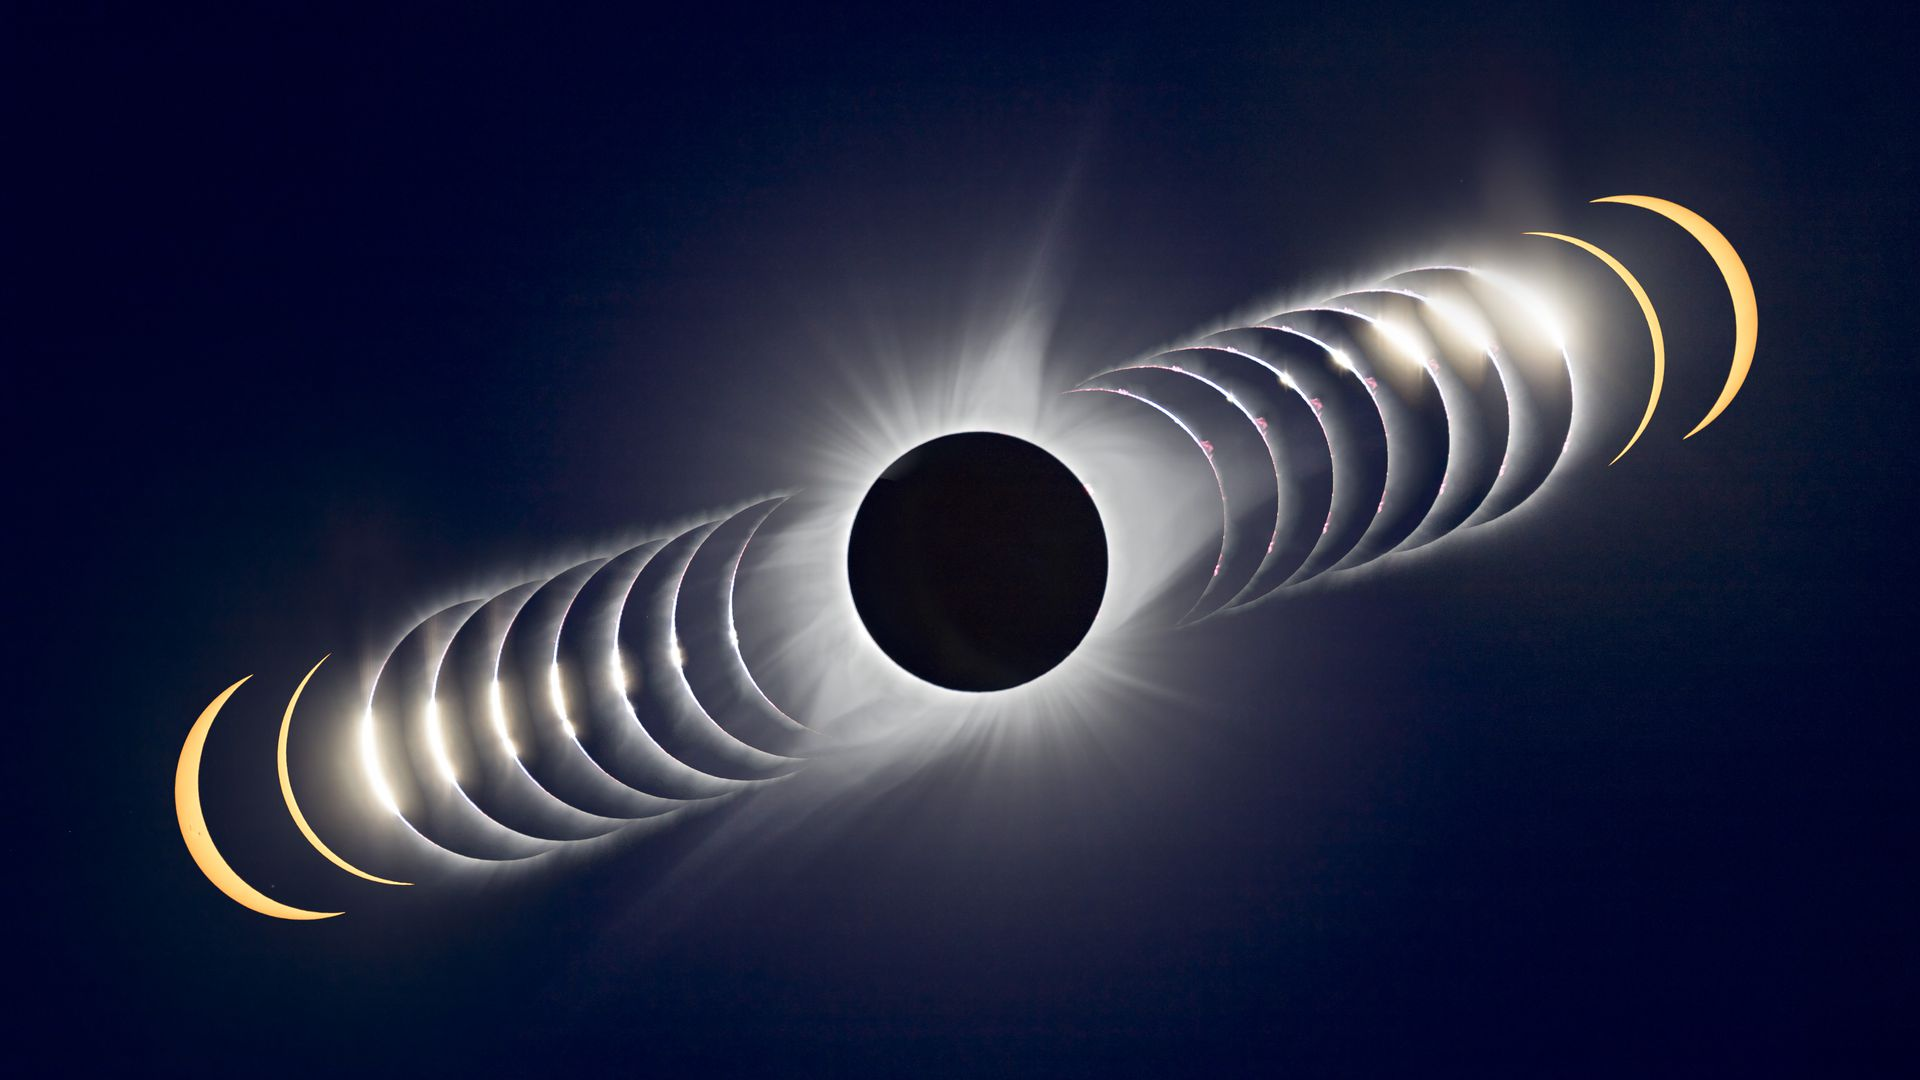 A time sequence composite of a solar eclipse